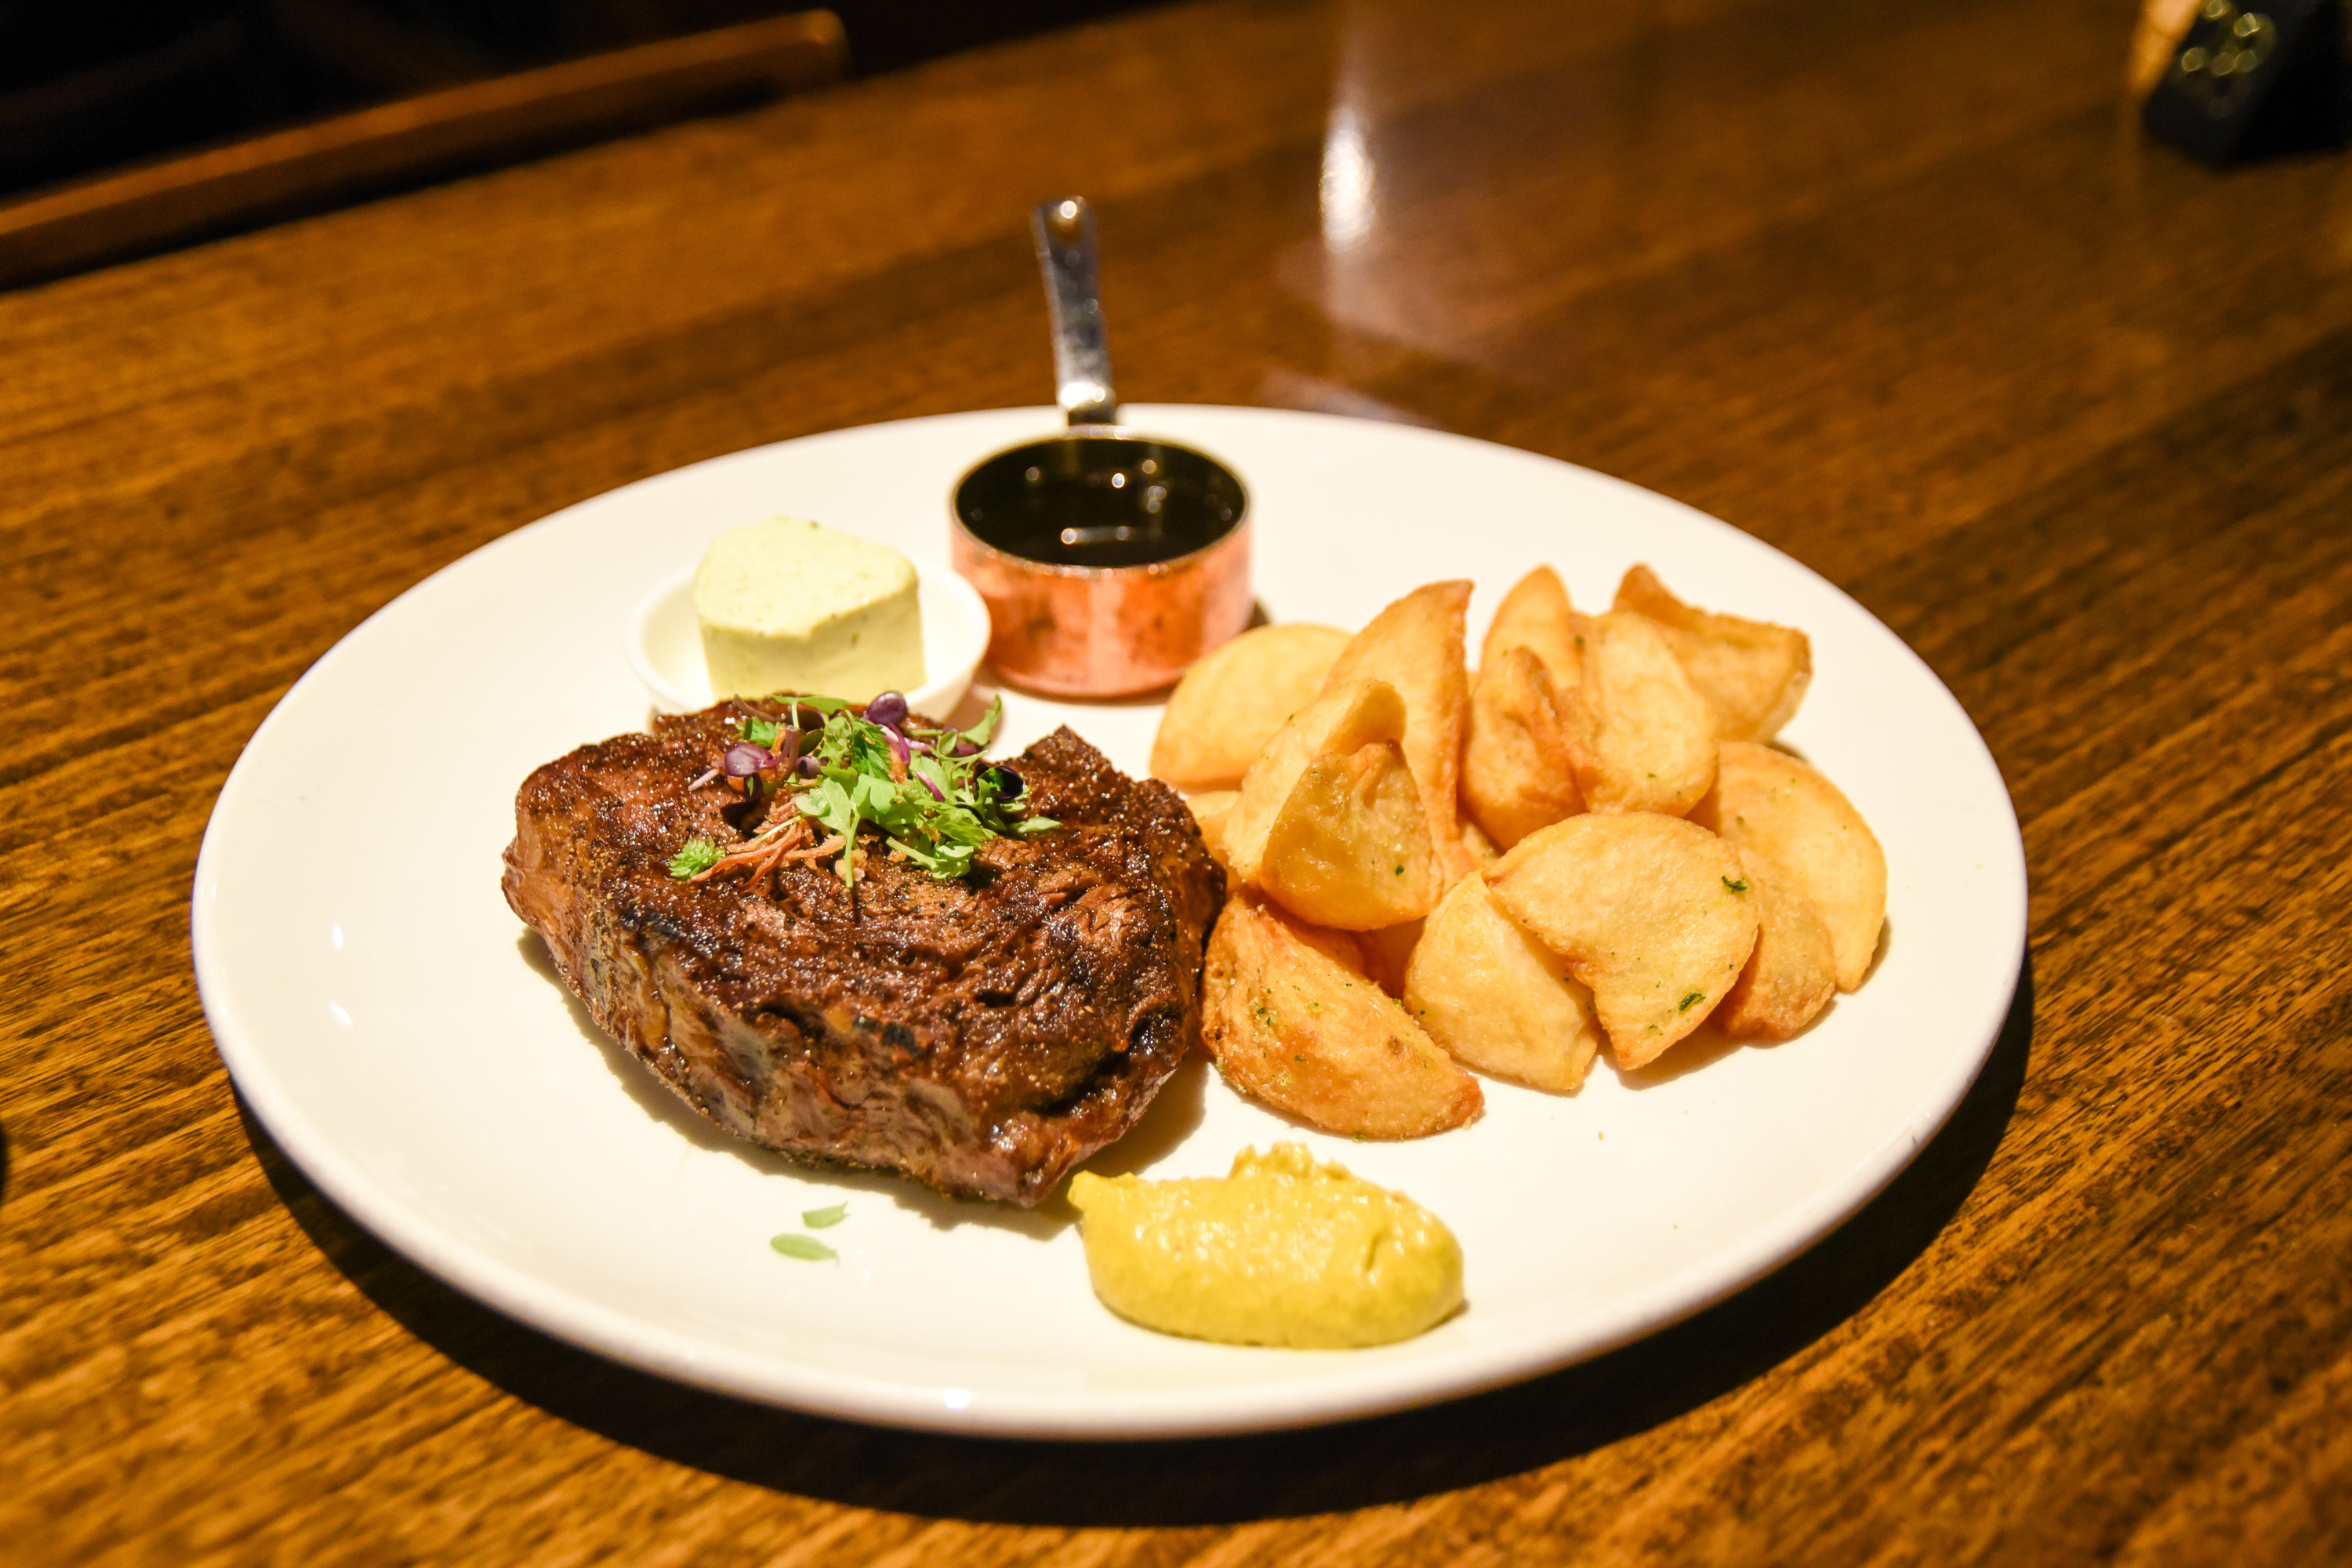 Steak and potatoes at The Railway Club Hotel in Port Melbourne